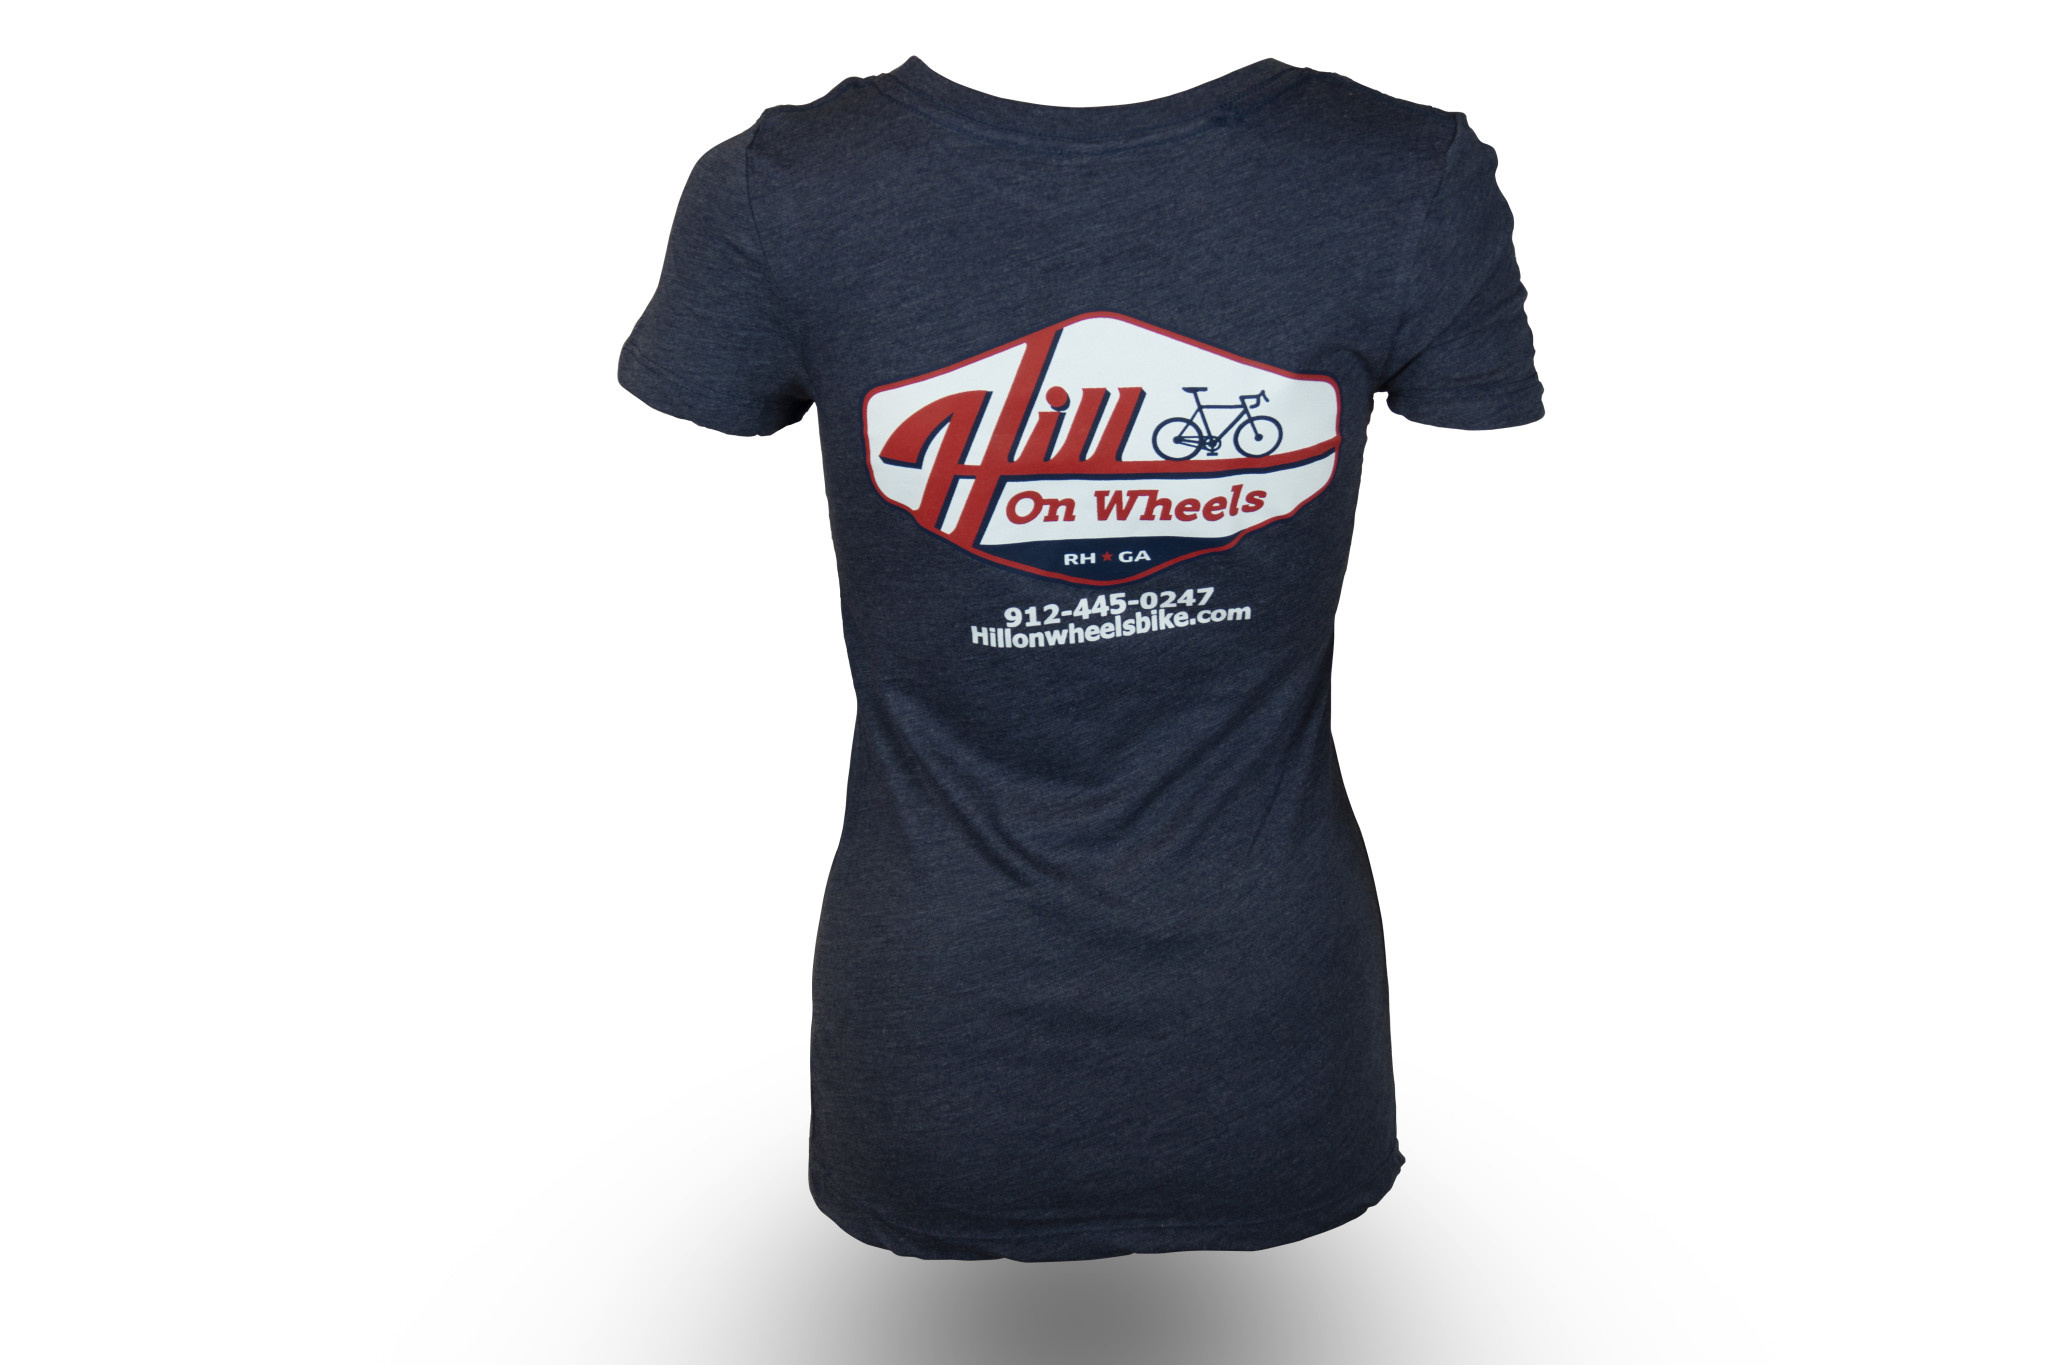 HOW WOMEN'S T-SHIRT